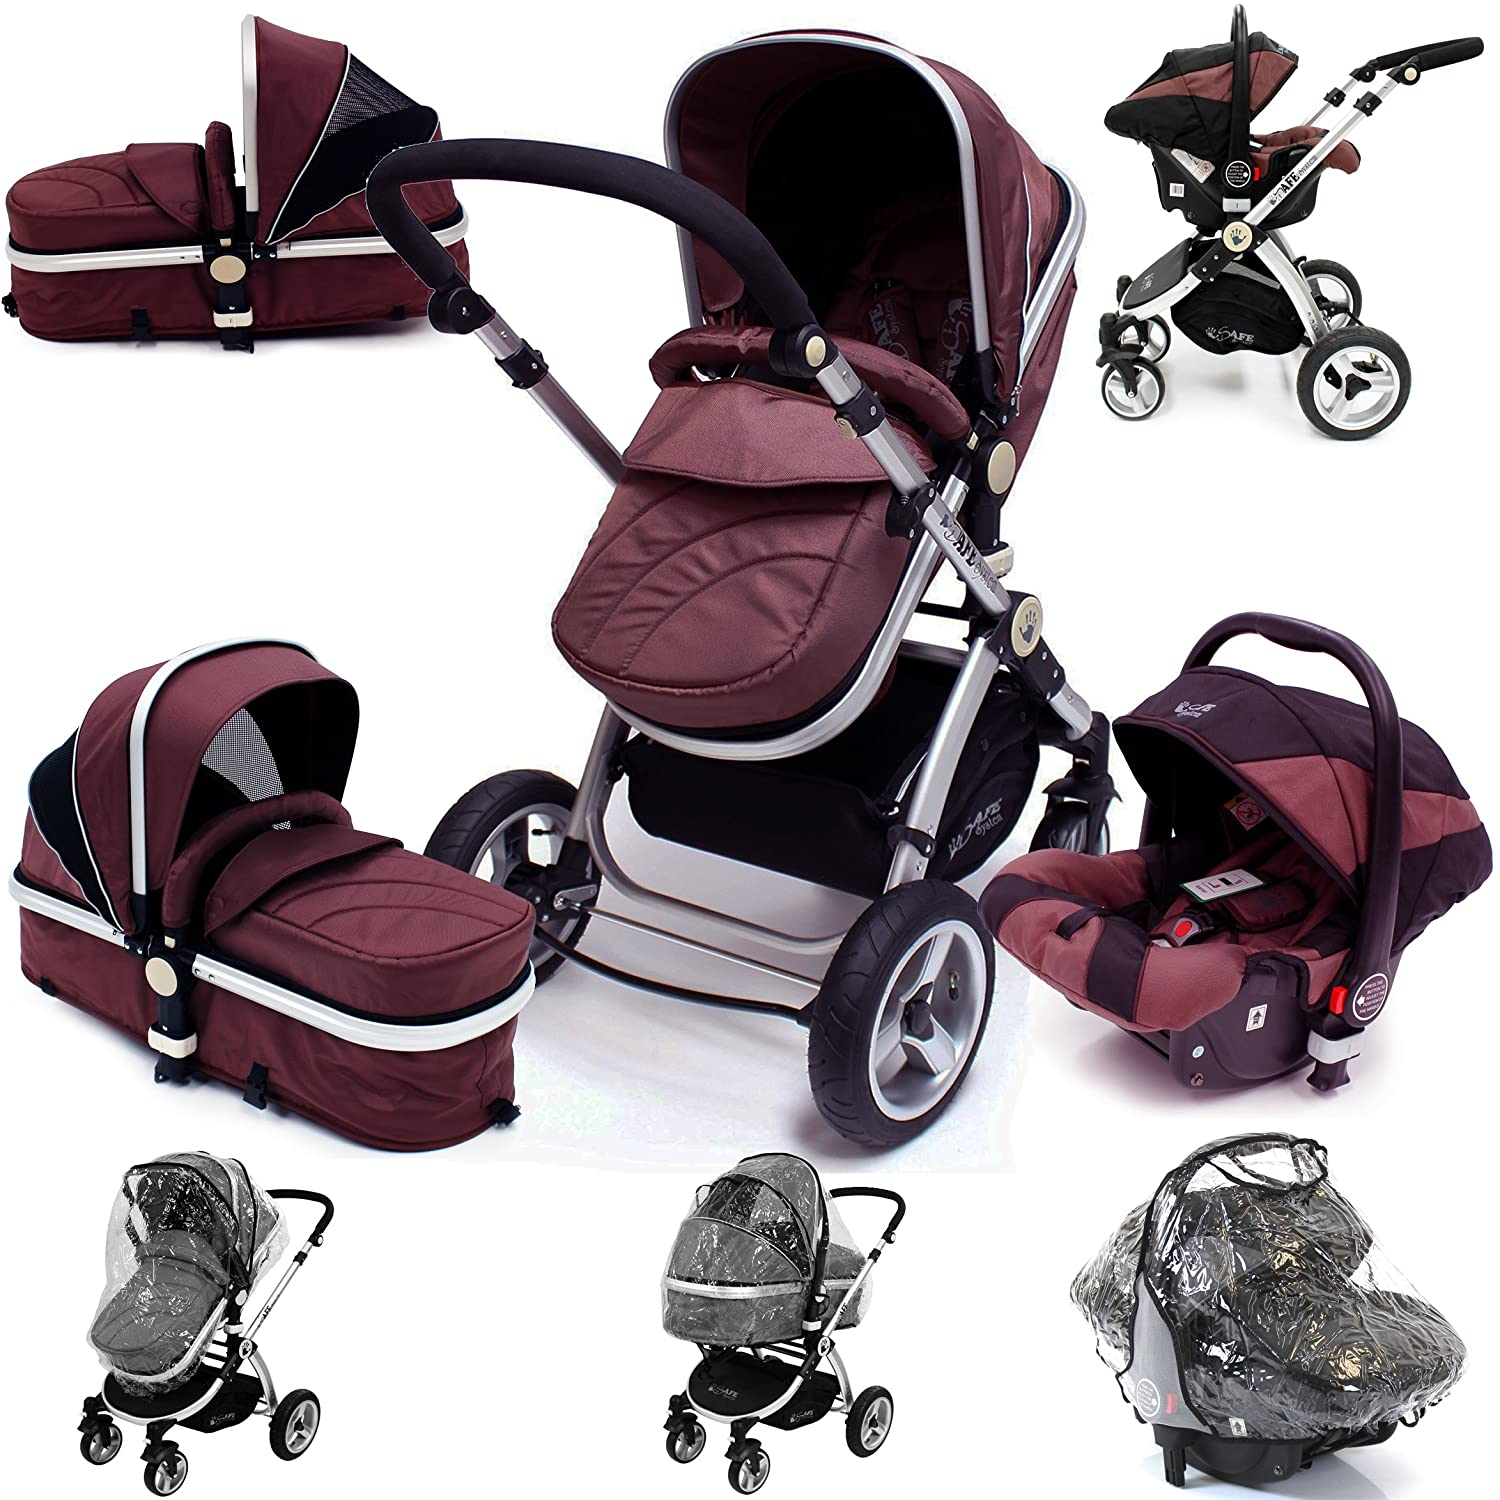 Hot Chocolate Trio Travel System Pram & Luxury Stroller 3 in 1